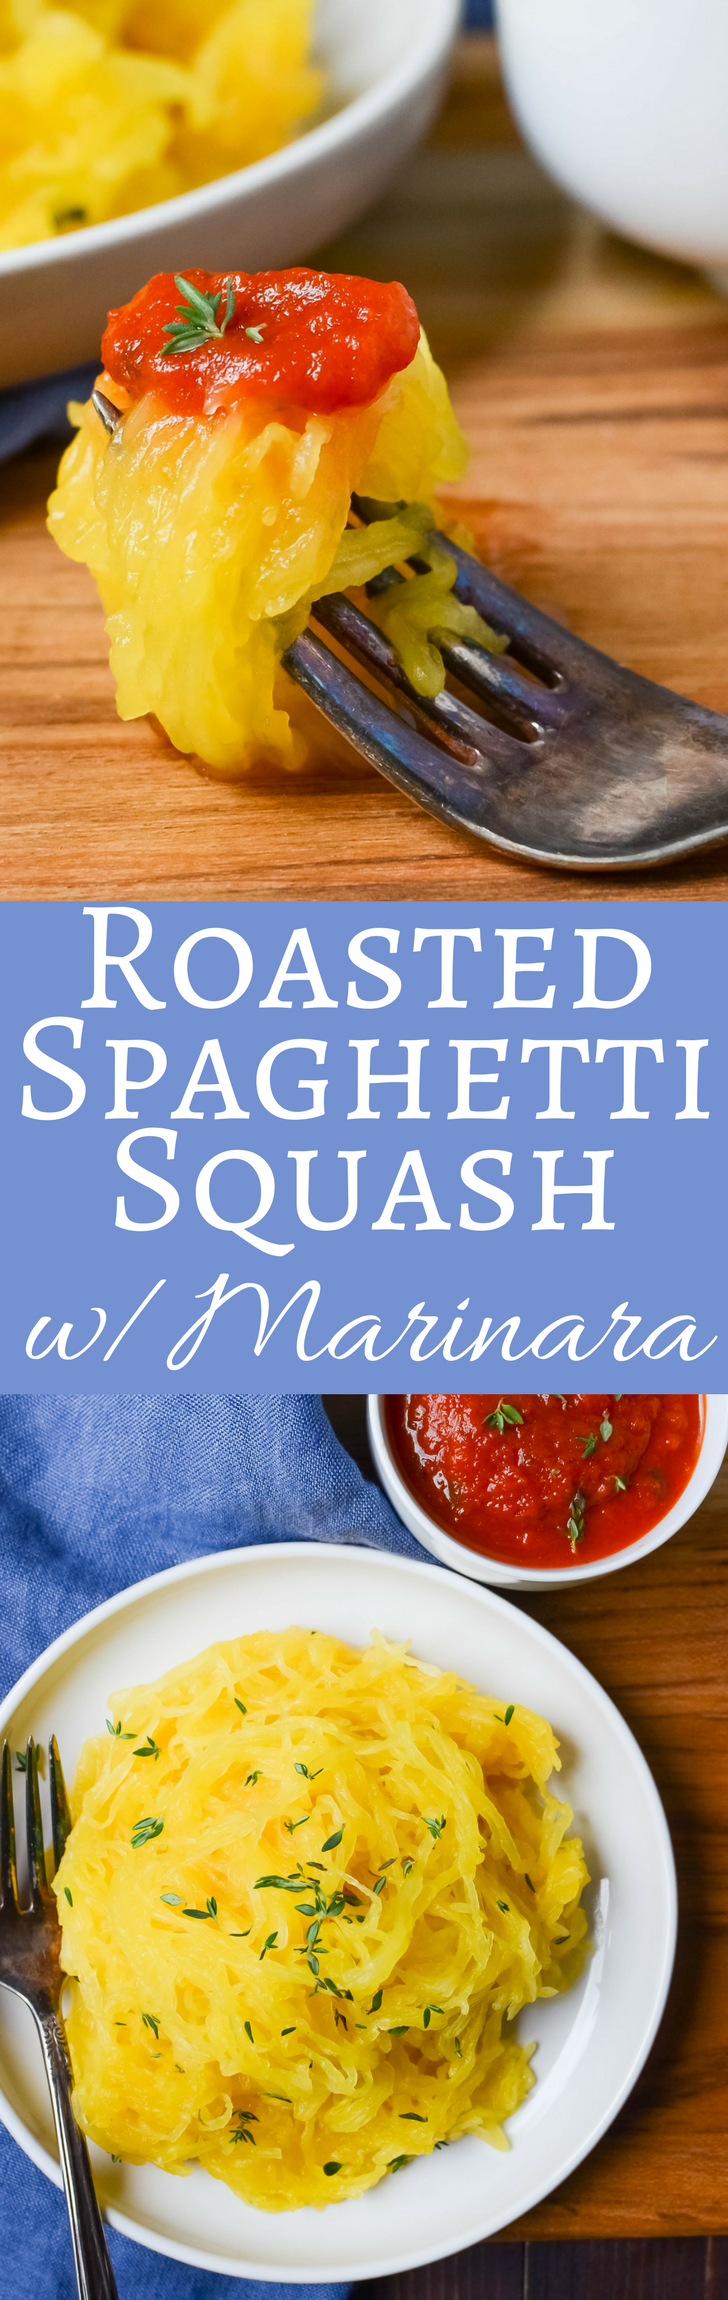 recipe: spaghetti squash with spicy marinara [28]